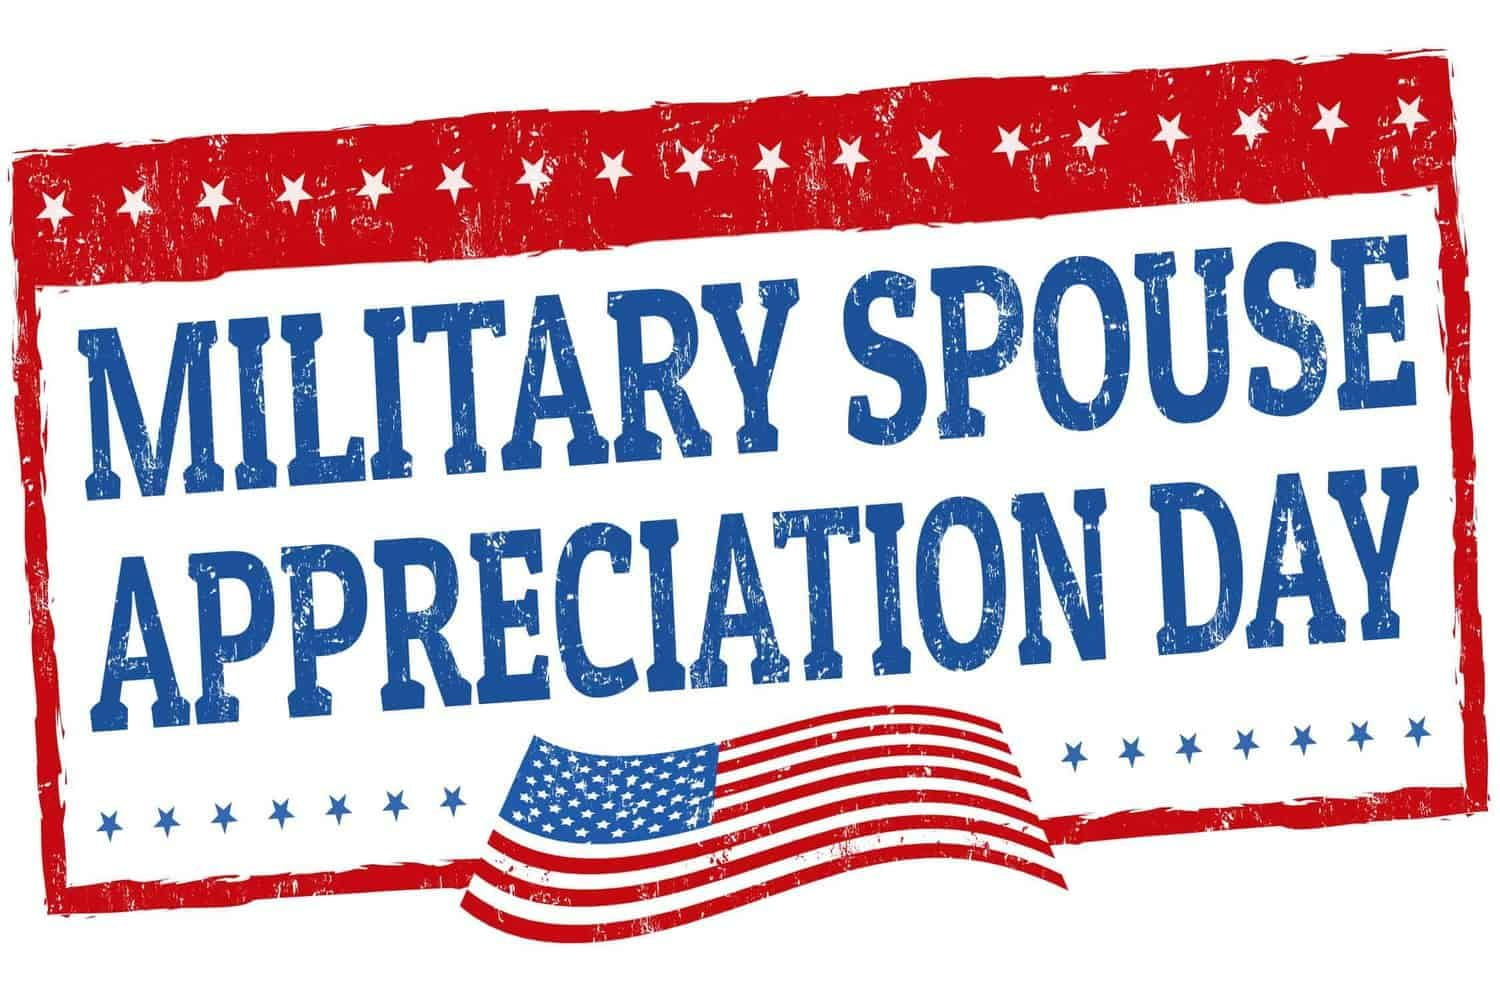 Sign celebrating Military Spouse Appreciation Day.